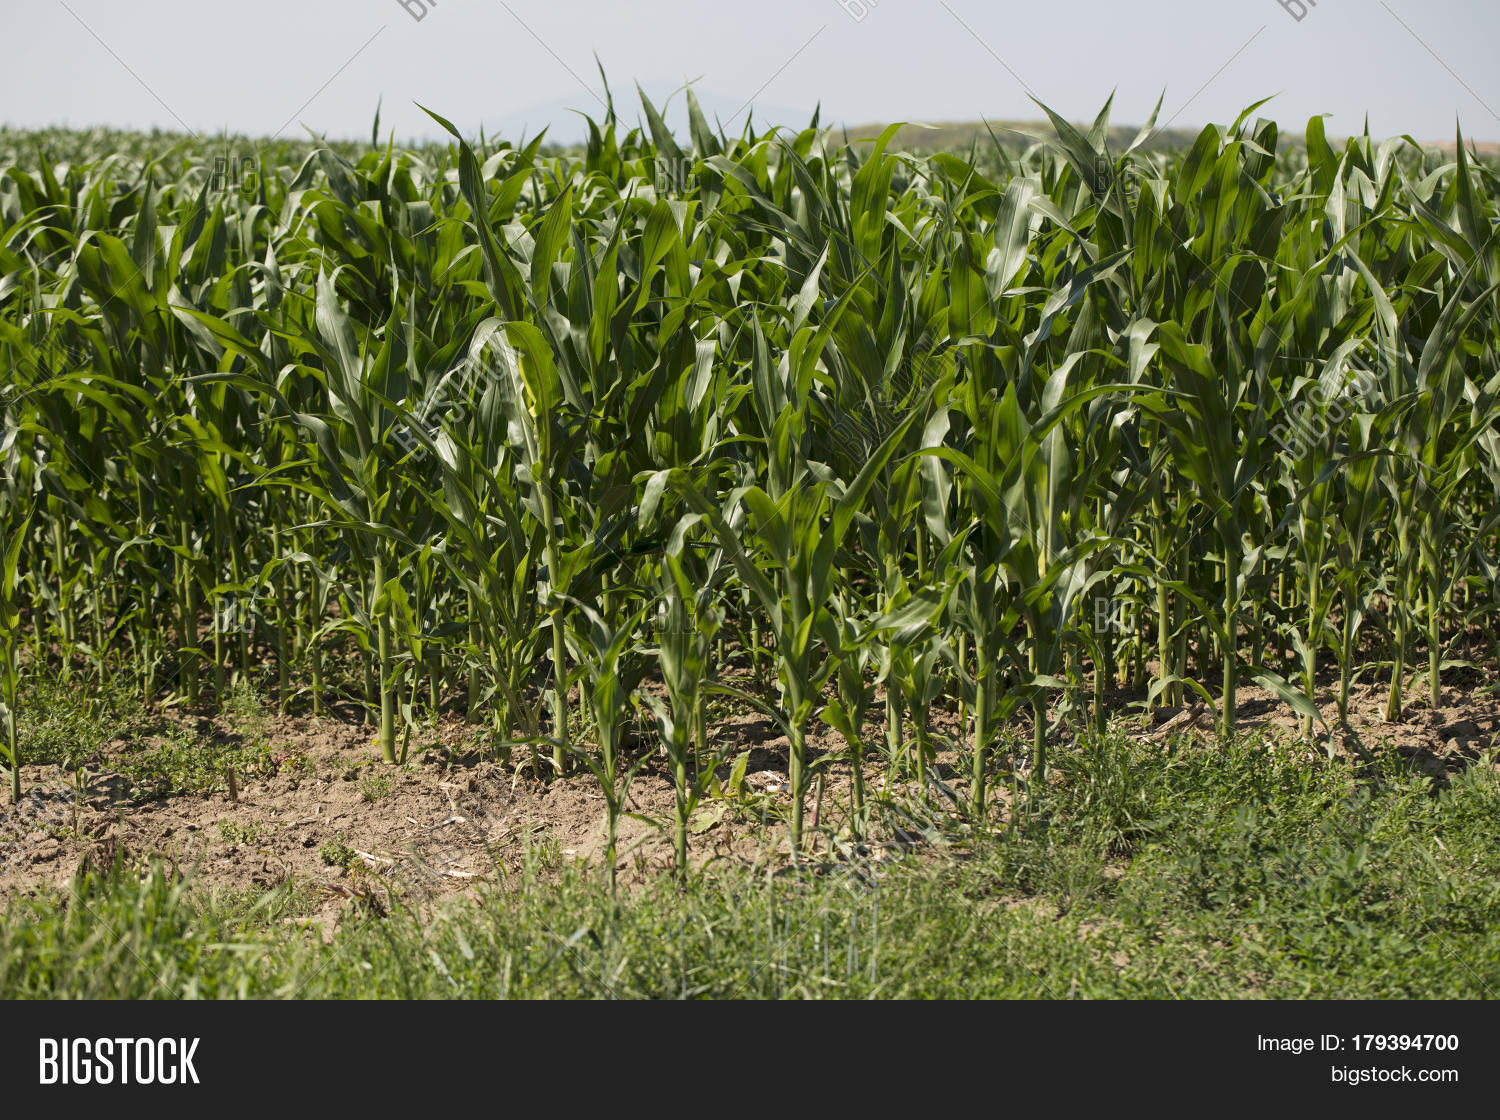 Cornfield During Summer. Background Image & Photo | Bigstock